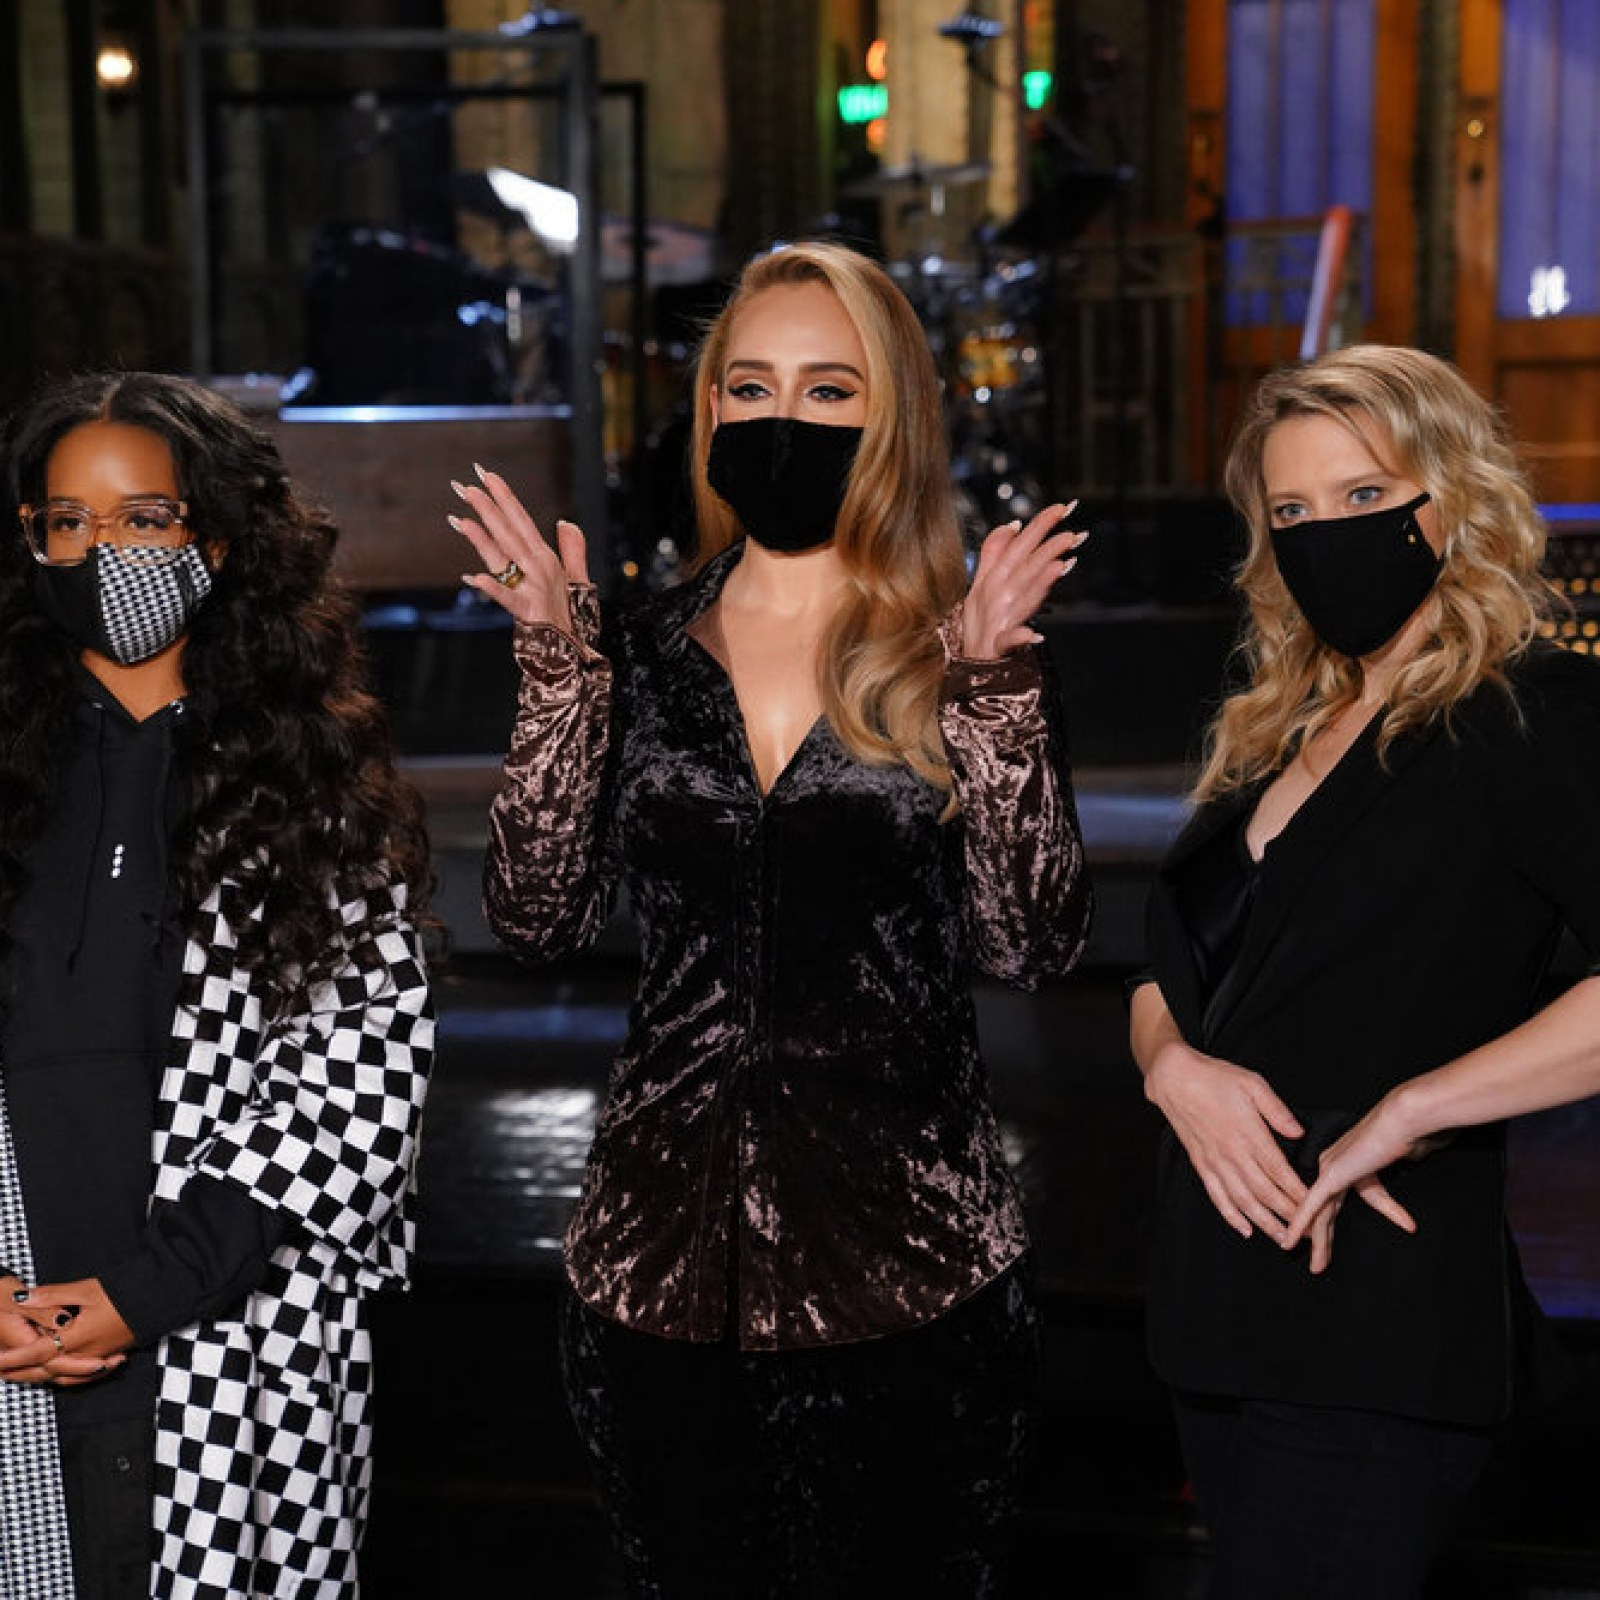 Is Snl On Tonight Season 46 Episode 4 Host Musical Guest